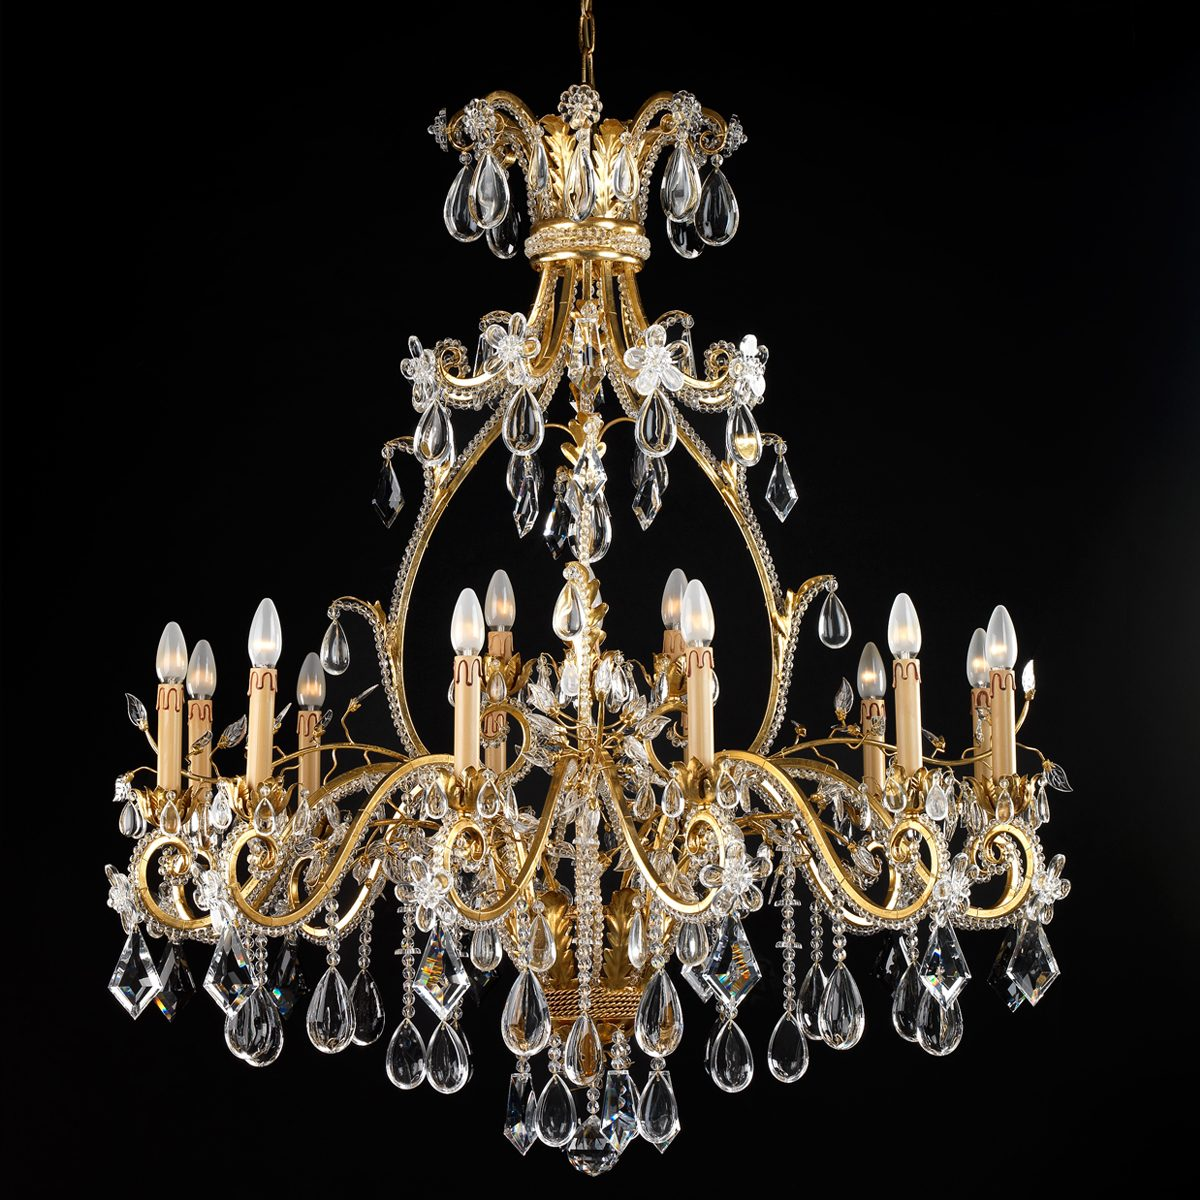 Handcrafted Lighting Designs by Badari badari Handcrafted Lighting Designs by Badari isaloni 2019 Mesmerizing Handcrafted Lighting Designs by Badari Chandelier Belle Epoque 2015